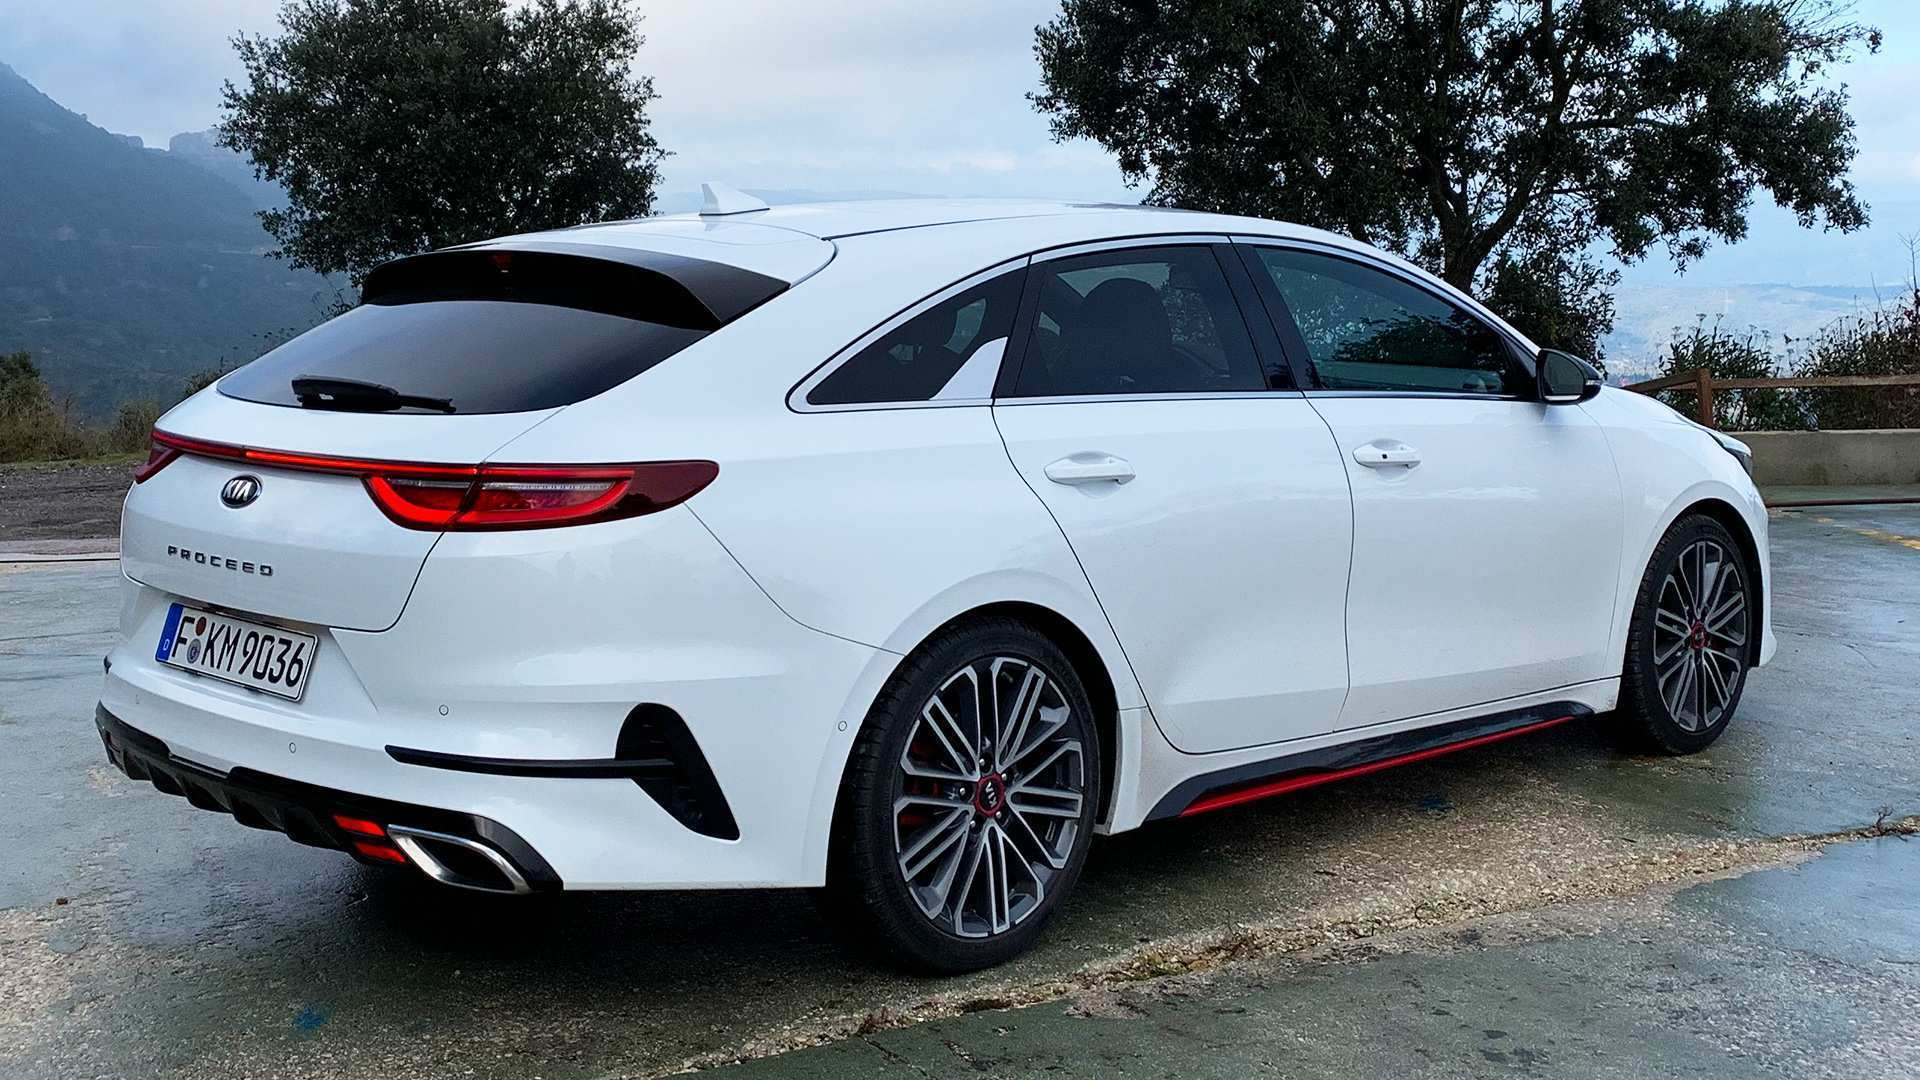 79 All New Kia Pro Ceed Gt 2019 Prices